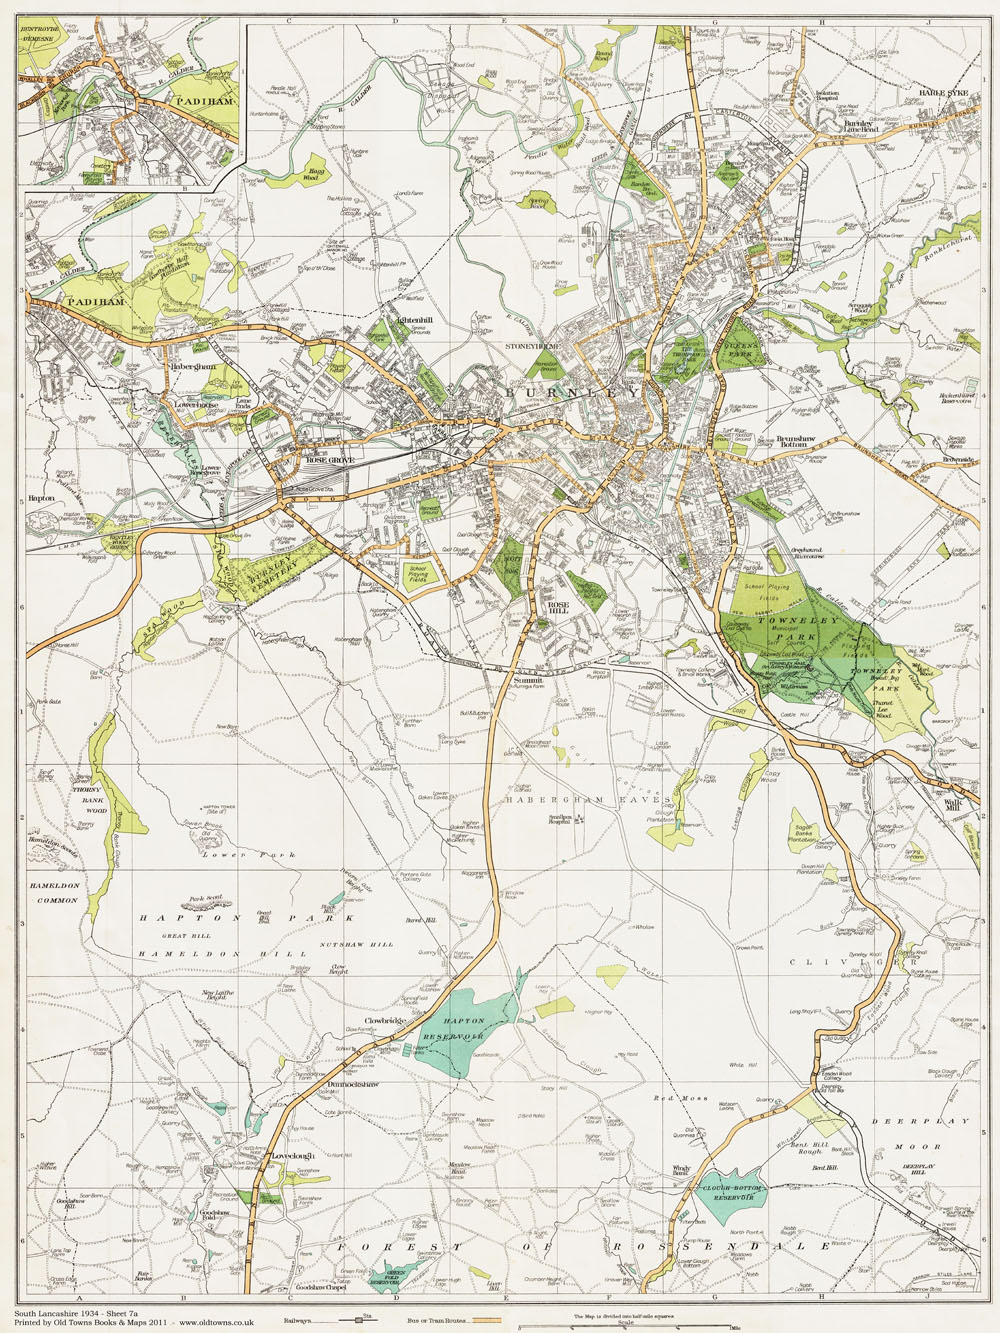 An old map of the Burnley and Padiham area, Lancashire in ... Map Of Burnley on map of swindon, map of darlington, map of york, map of heysham, map of haywards heath, map of middleton, map of march, map of london gatwick airport, map of tandragee, map of reading, map of forest of dean, map of lancashire, map of margate, map of england, map of coleraine, map of tarleton, map of newcastle central, map of eastleigh, map of nailsworth, map of chipping campden,